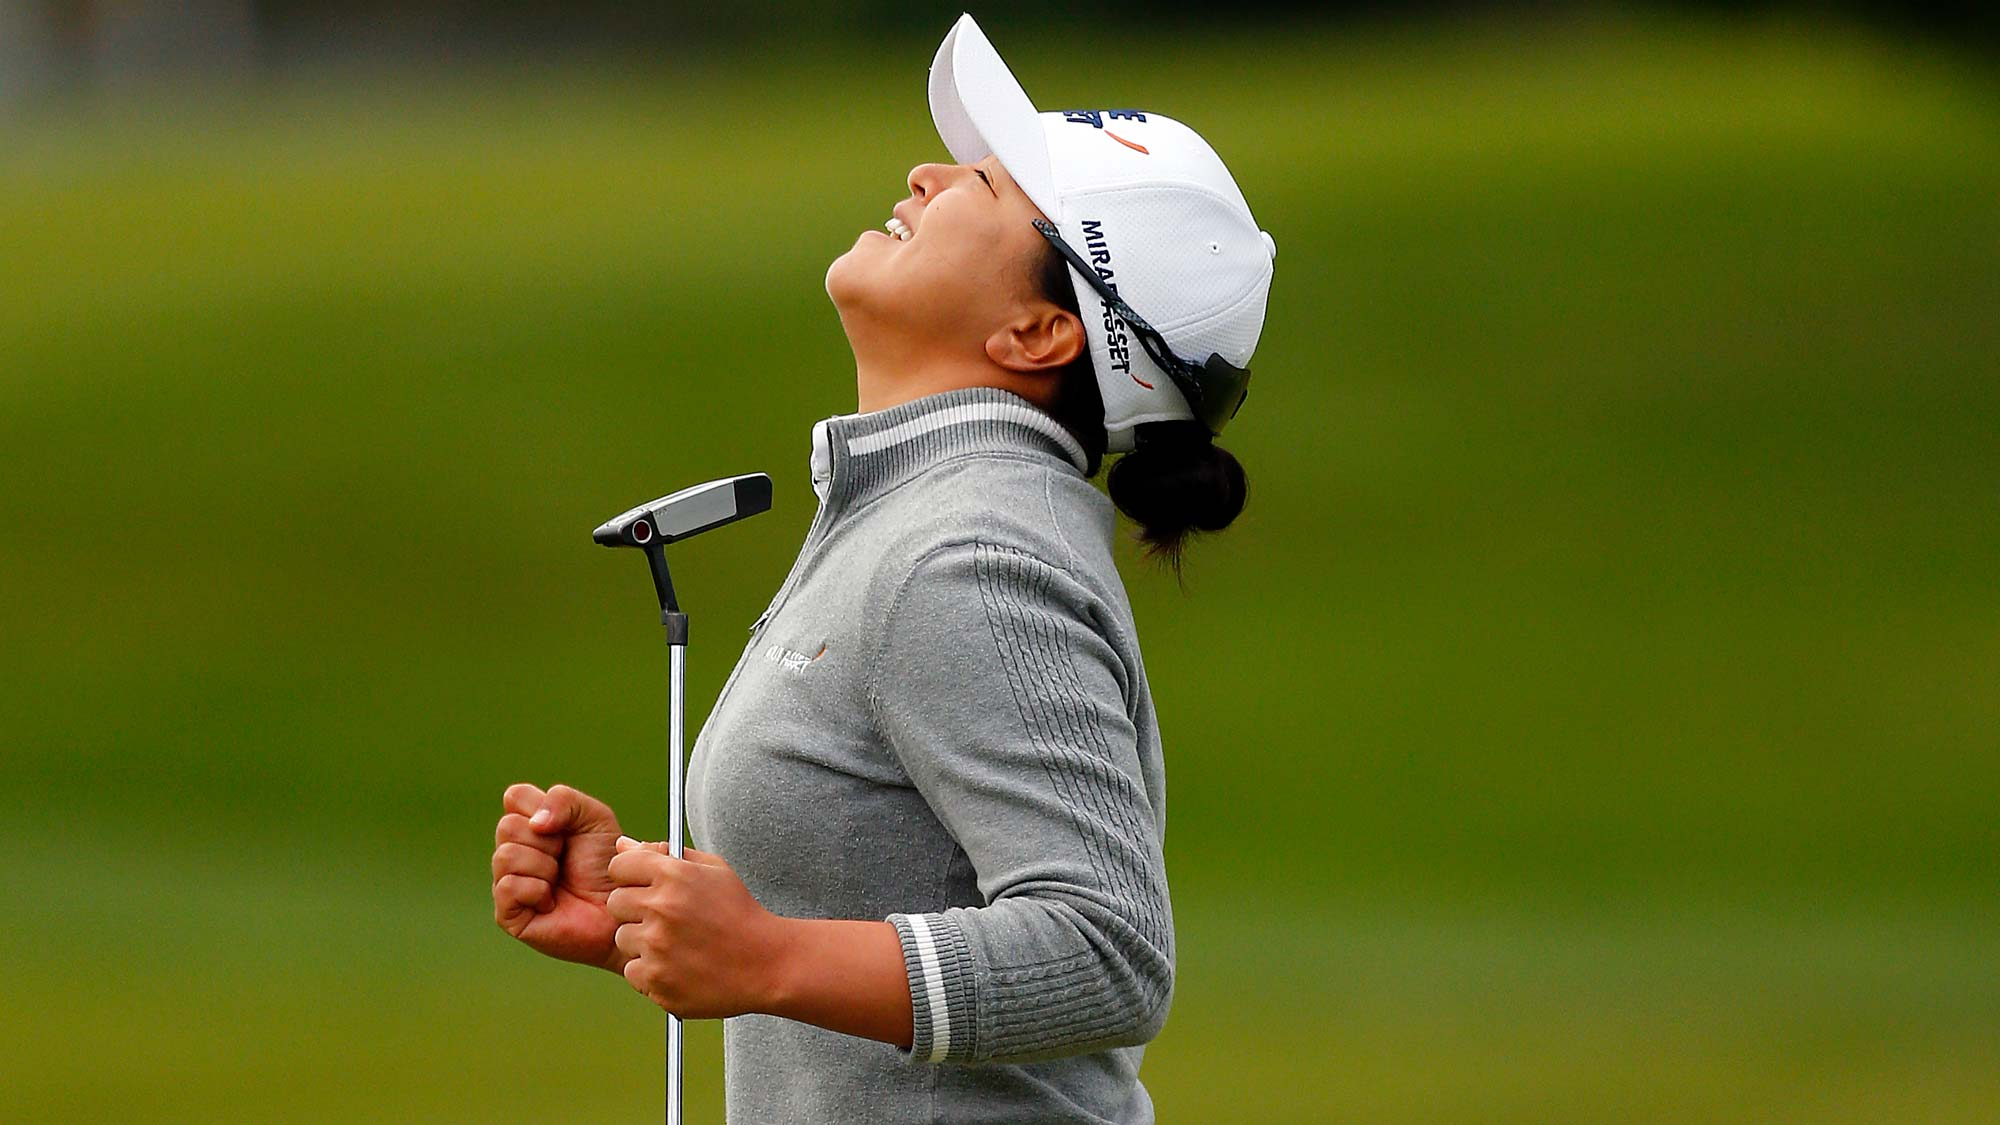 Sei Young Kim of South Korea celebrates making a birdie putt in a sudden death playoff to win during the final round of the LPGA Mediheal Championship